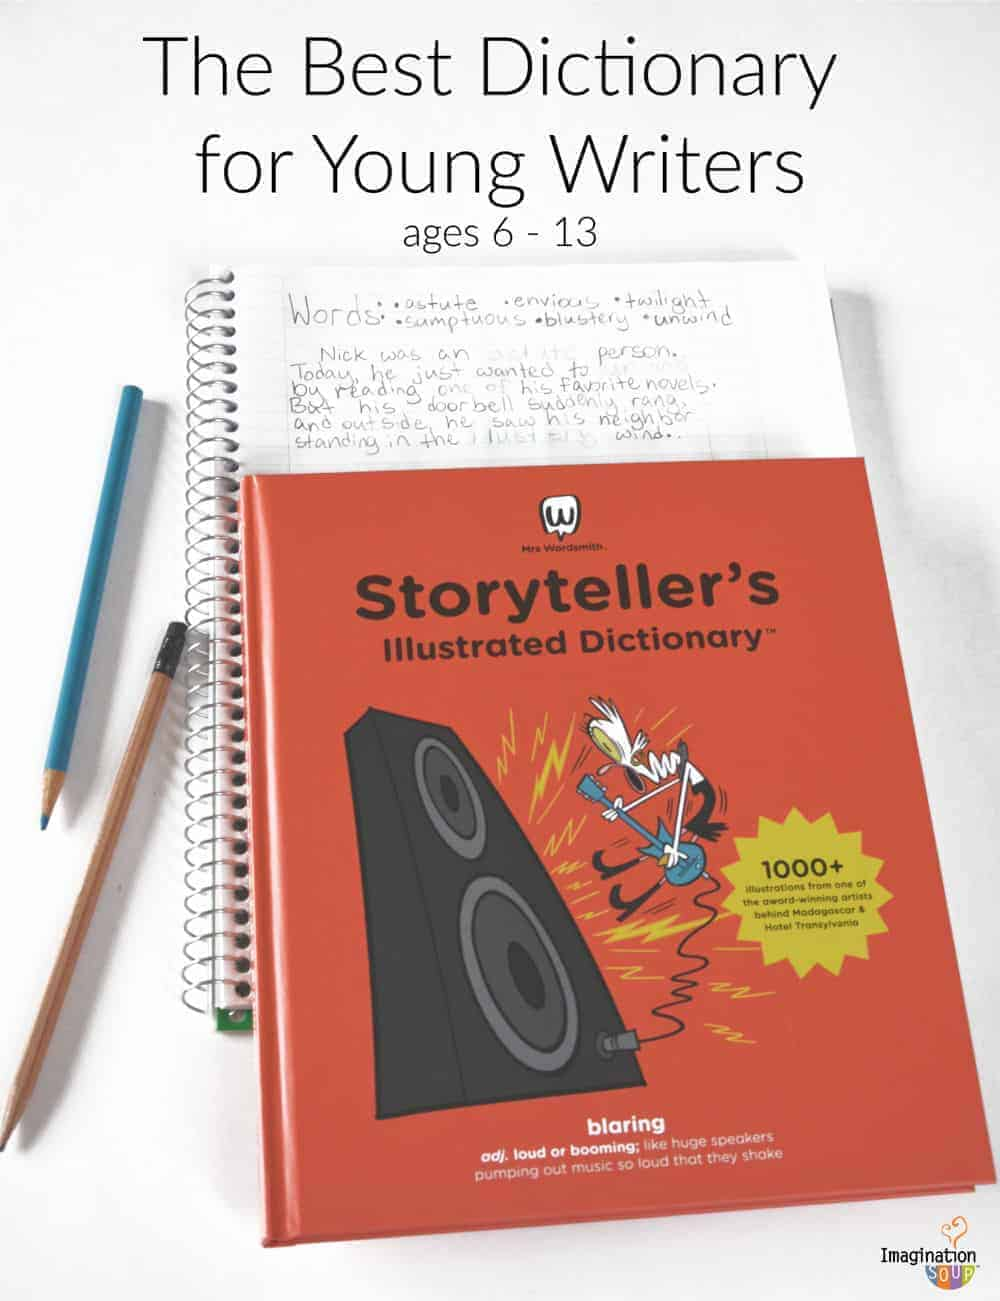 6 Vocabulary Building Writing Activities for Mrs. Wordsmith's Storyteller Illustrated Dictionary